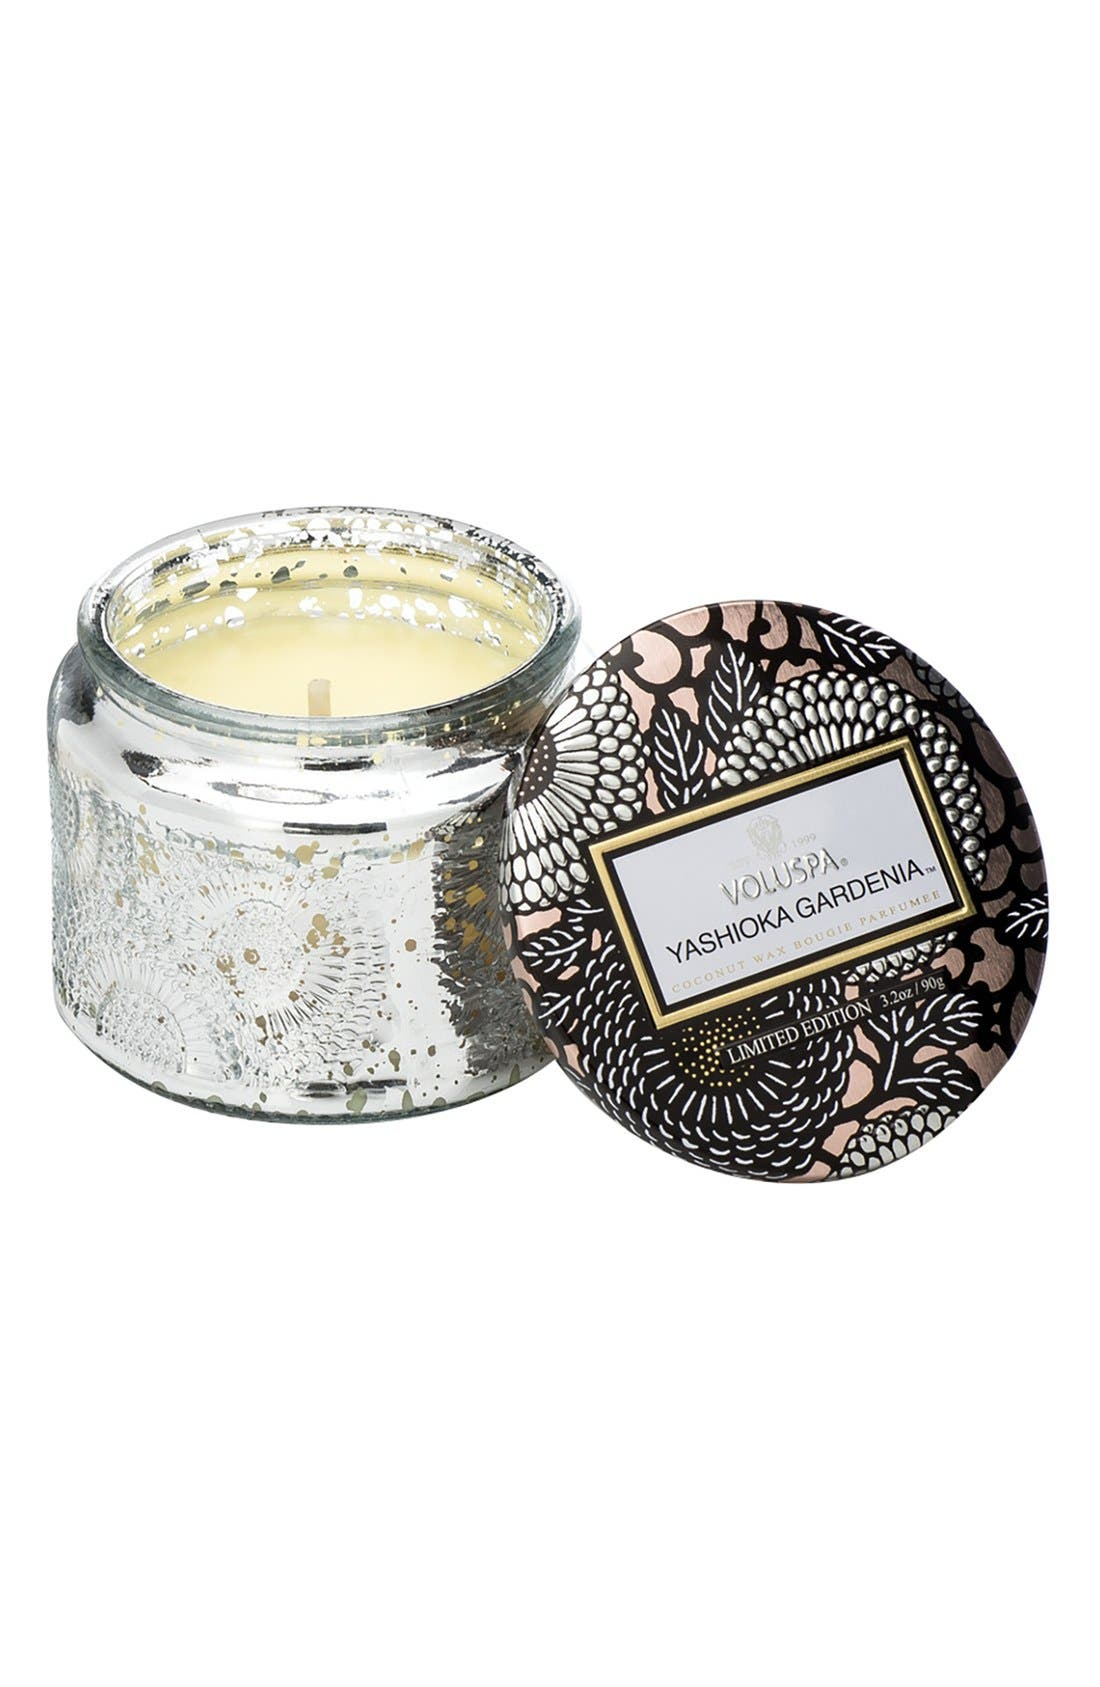 Voluspa Japonica - Yashioka Gardenia Petite Embossed Glass Jar Candle (Limited Edition)